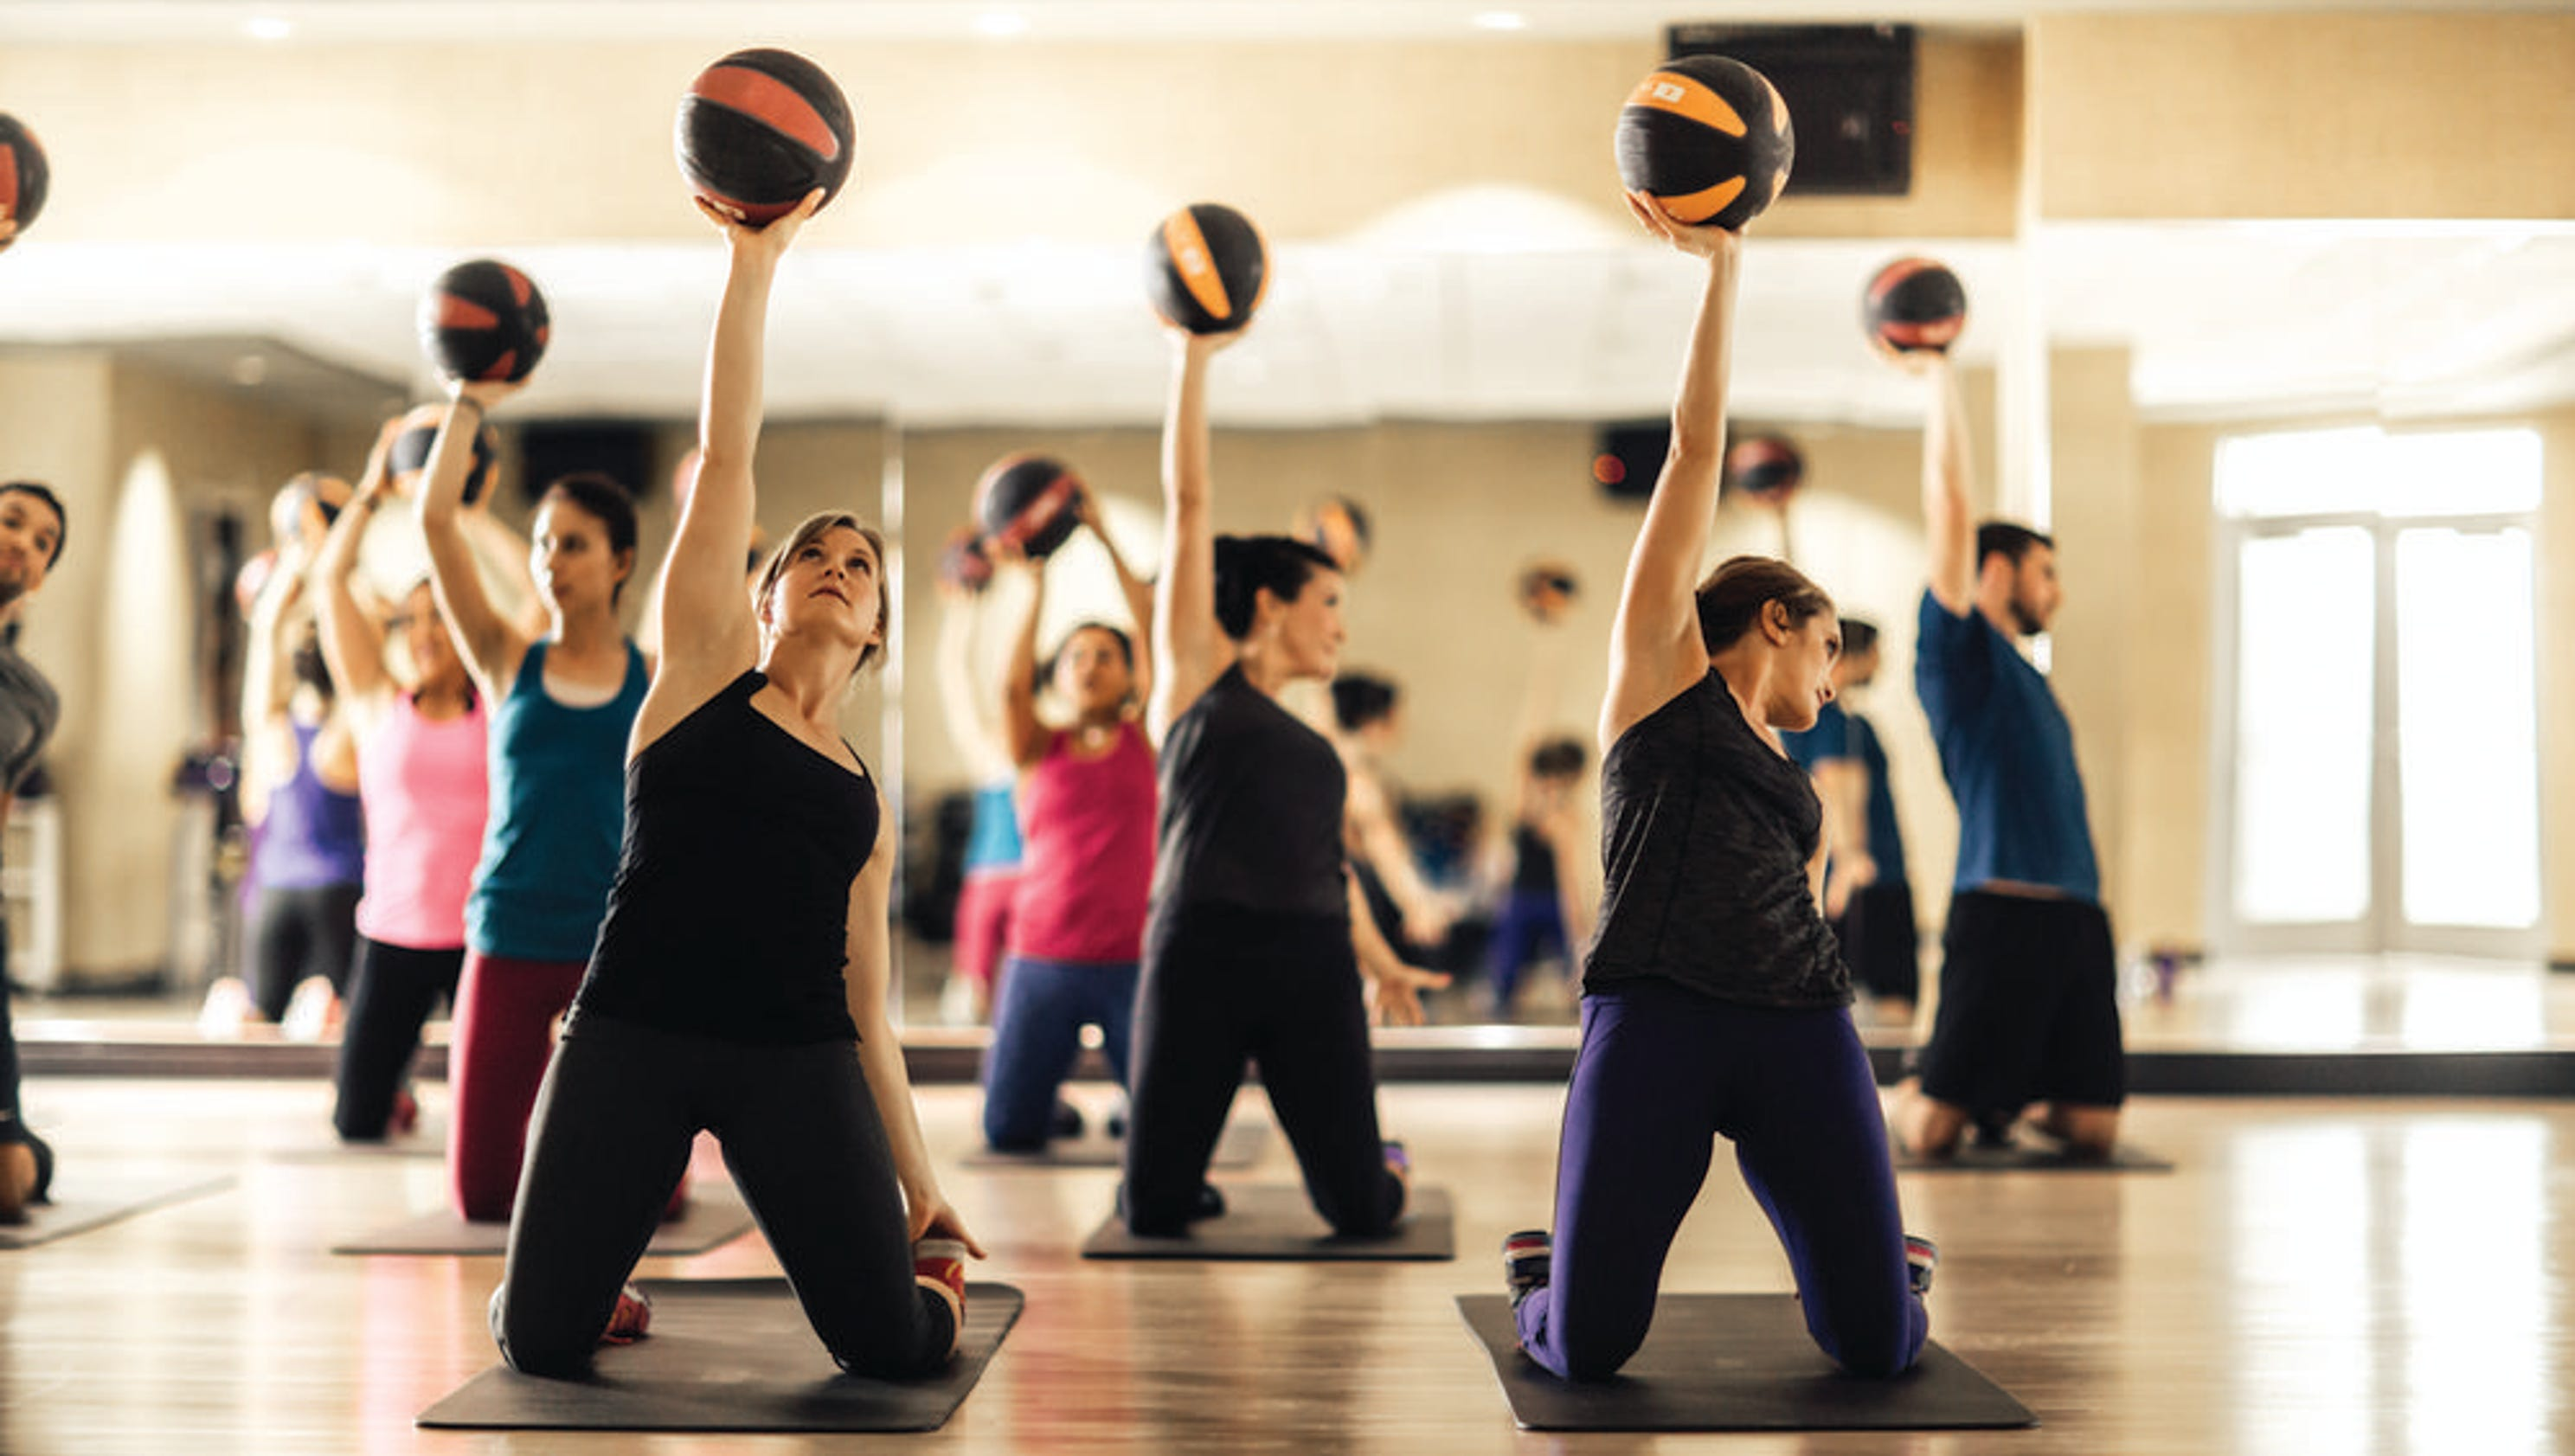 Life time fitness cable news ban suggests opposing views